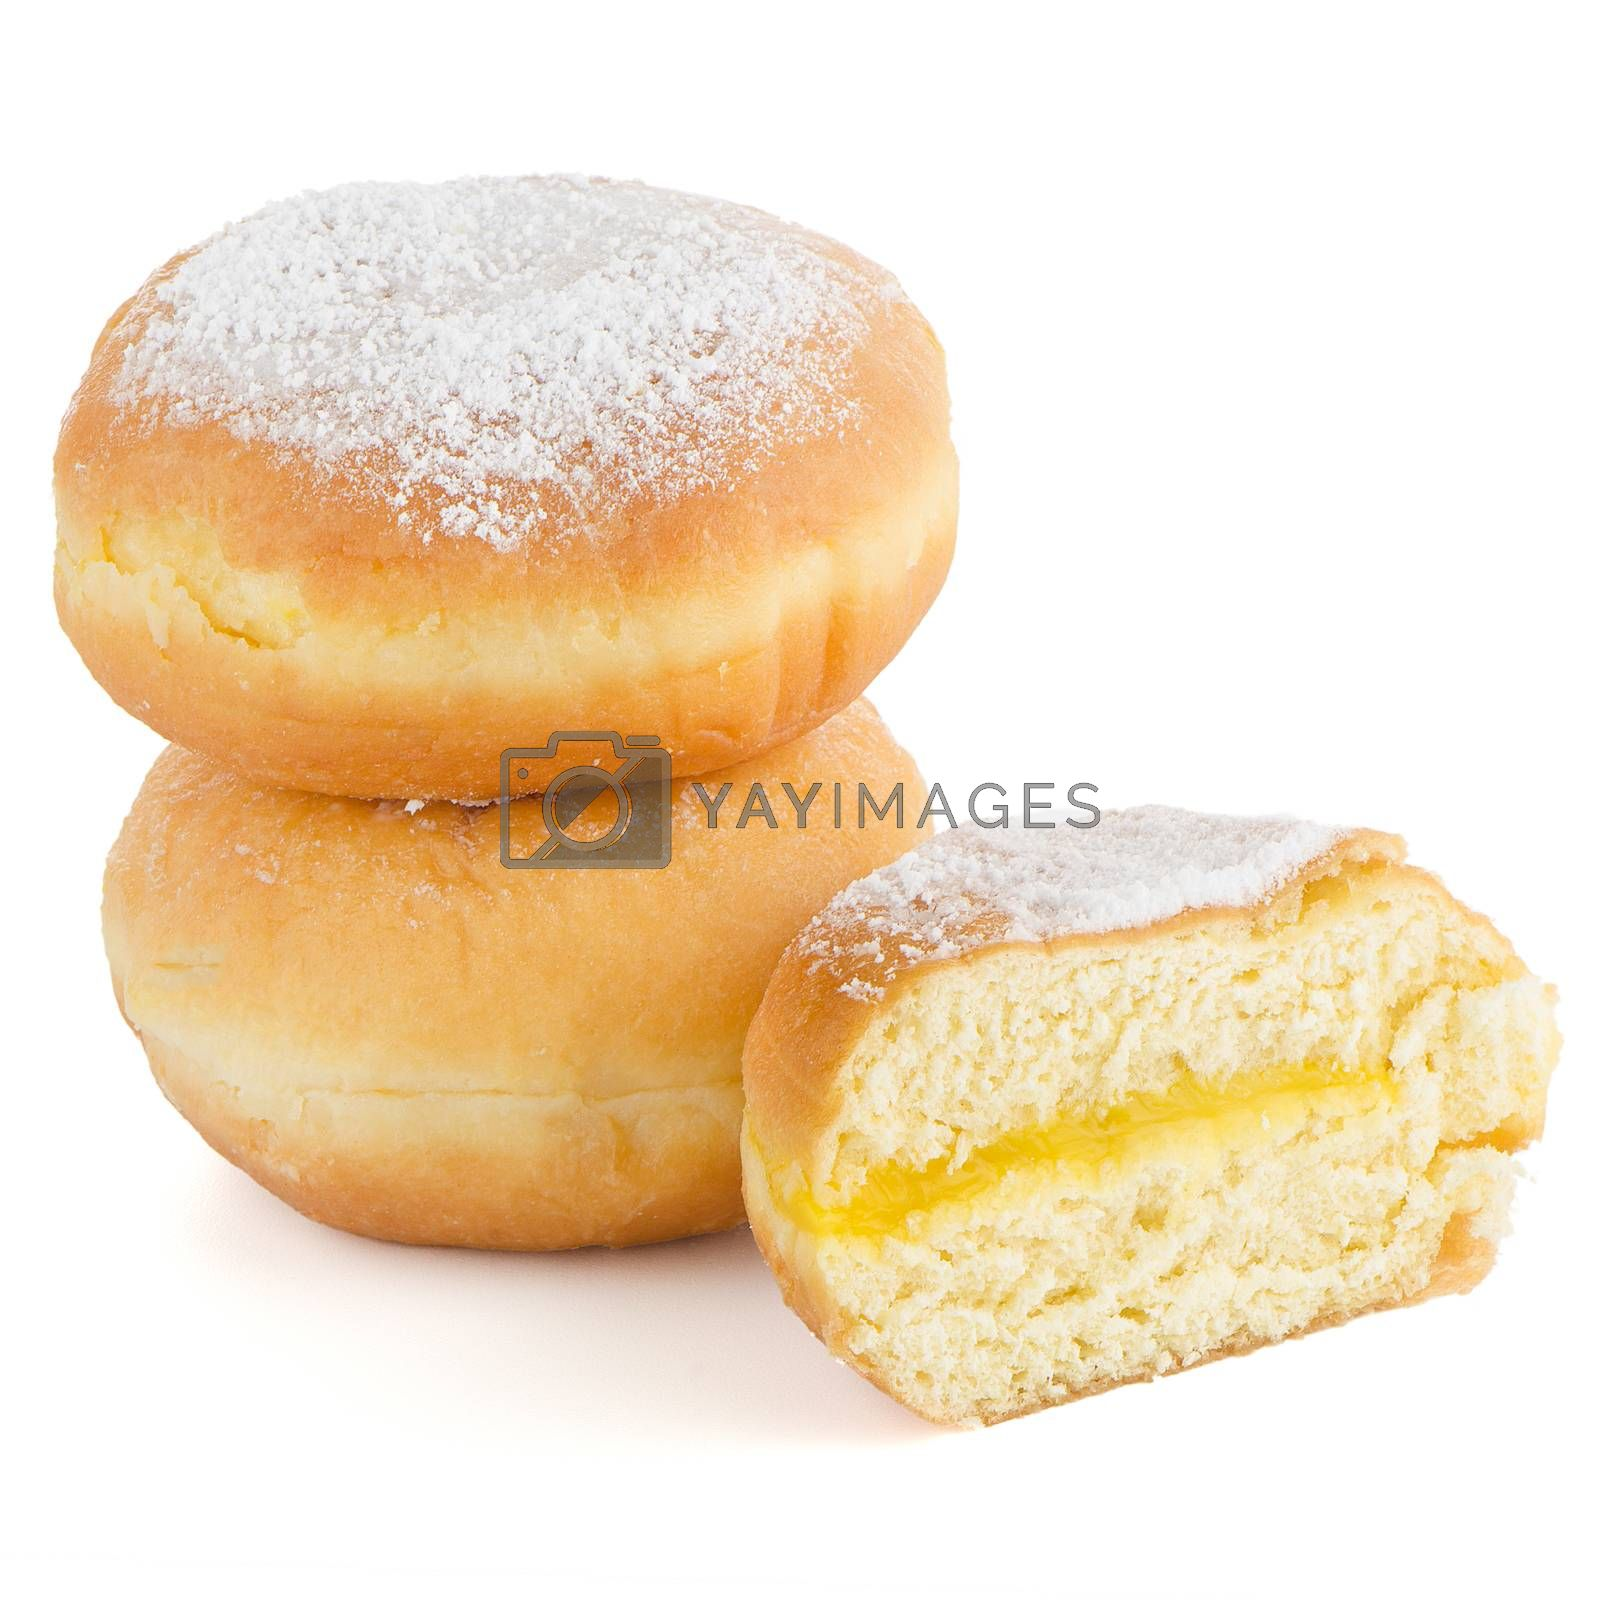 Royalty free image of Tasty donuts by homydesign